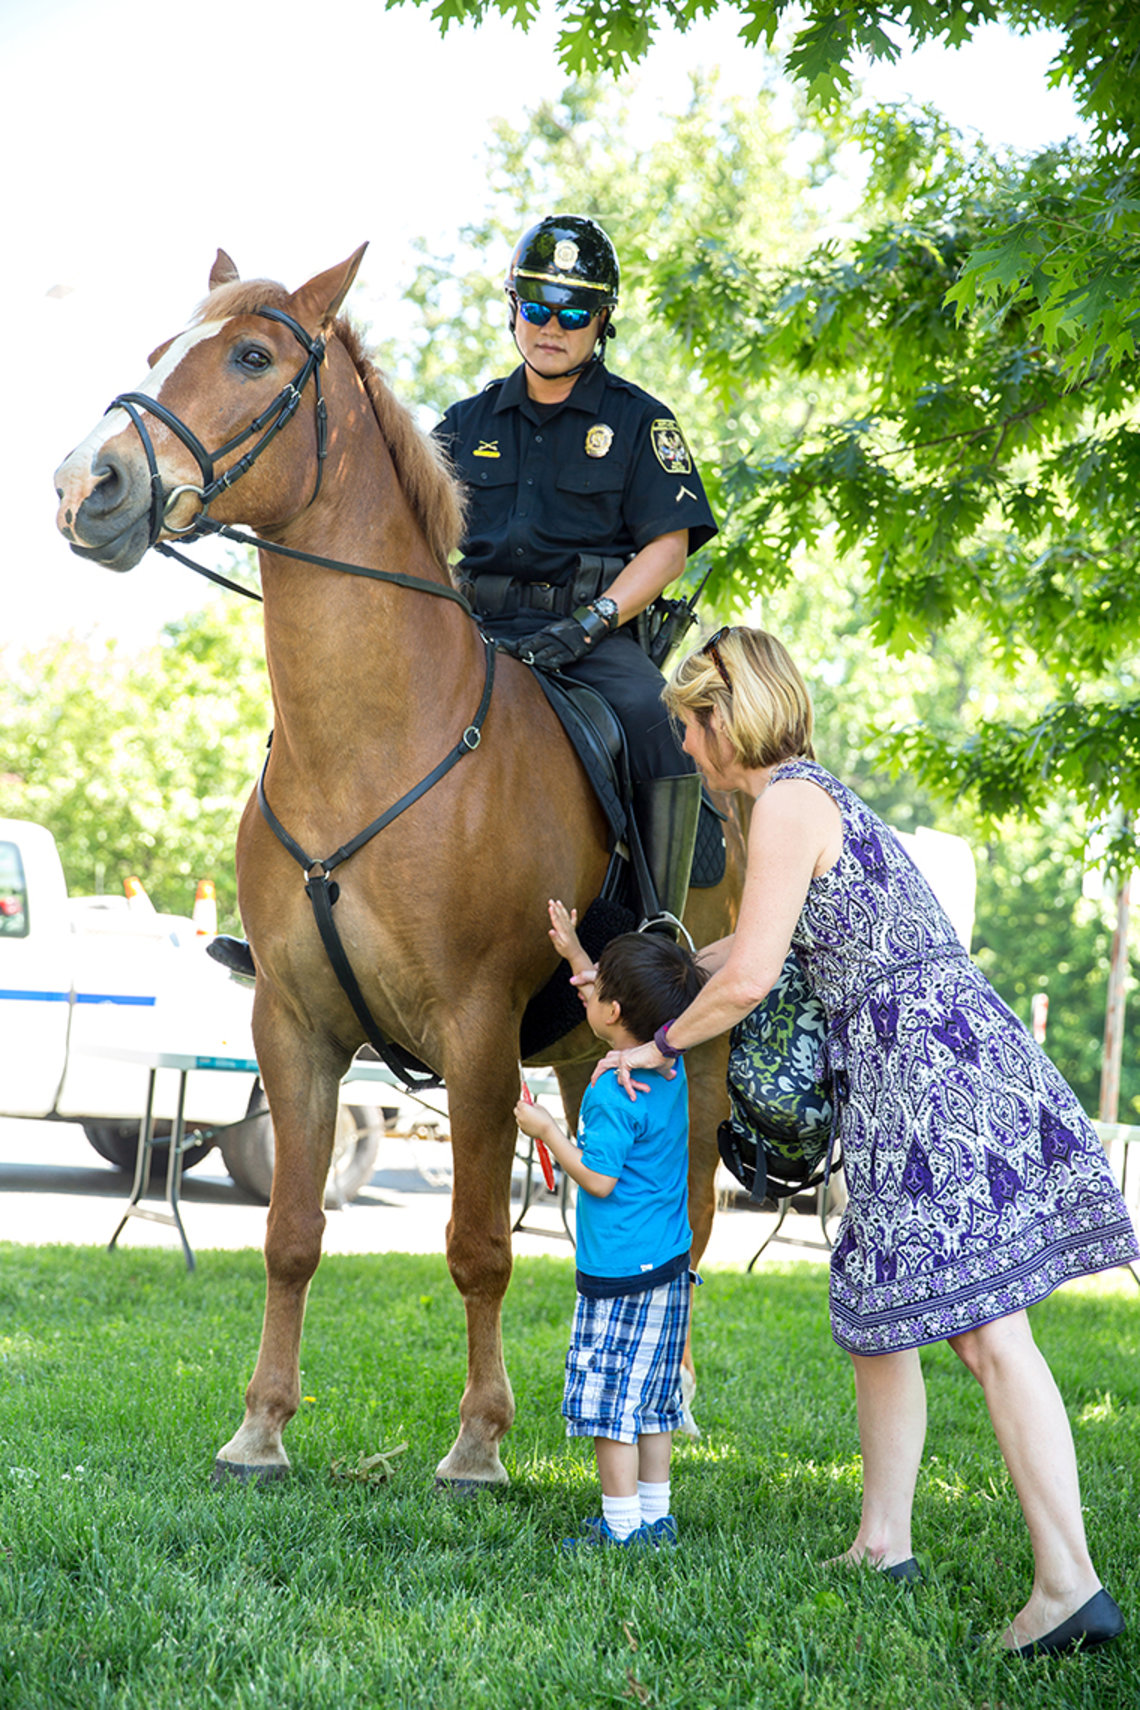 A horse with officer riding is petted by a youngster and adult.